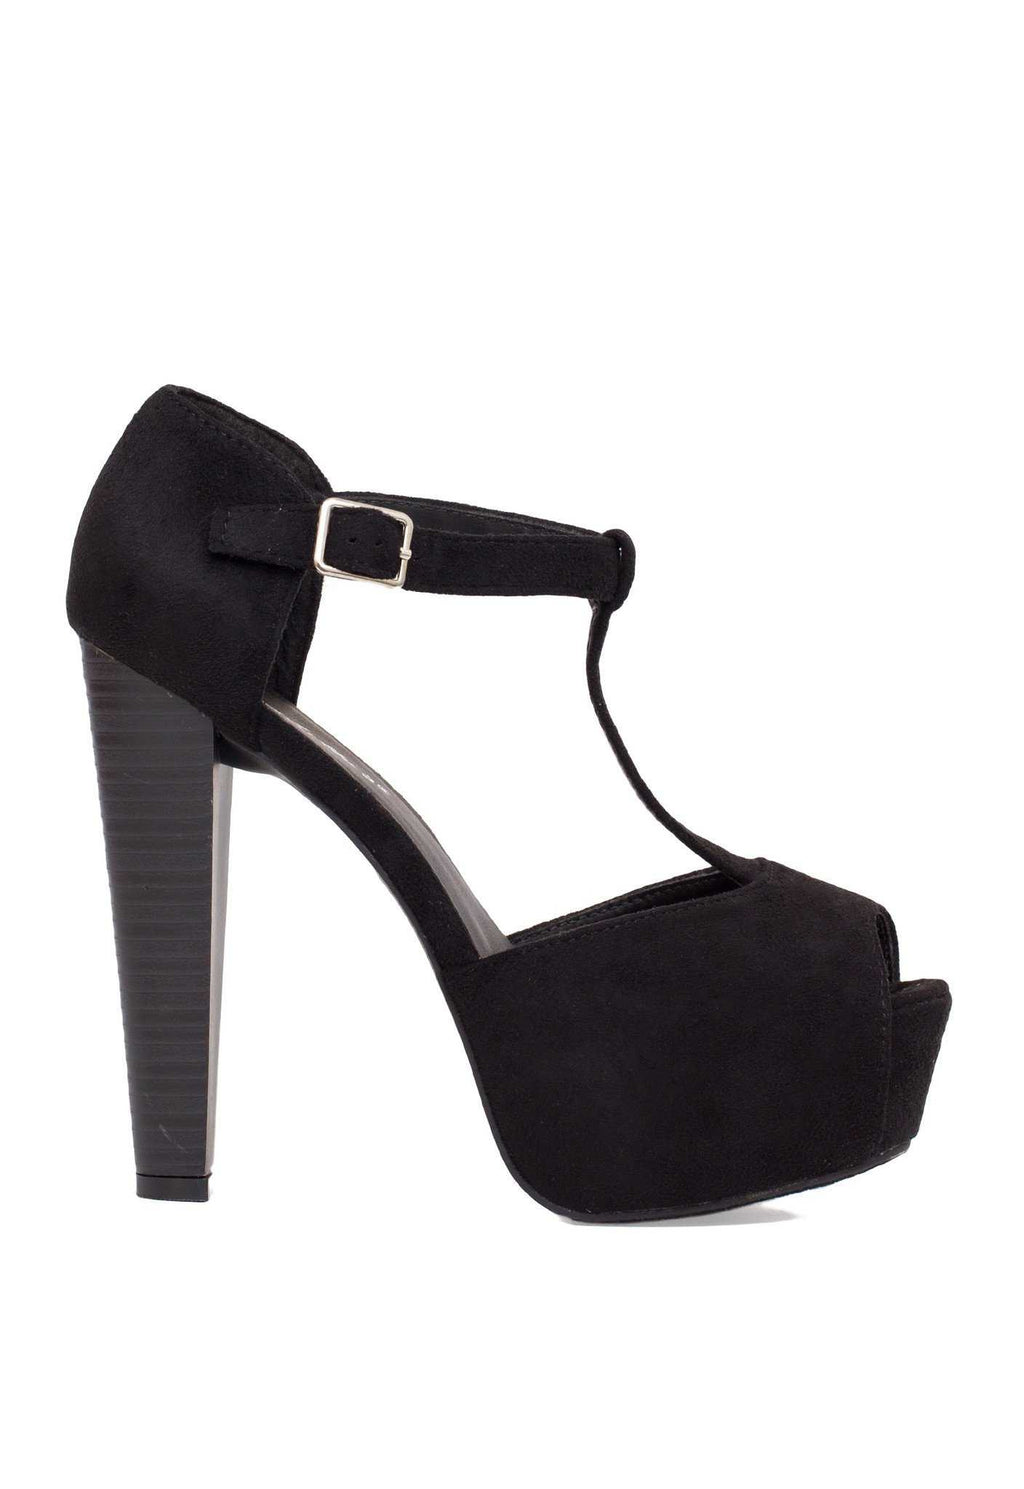 Shoes - Eliza Heels In Black